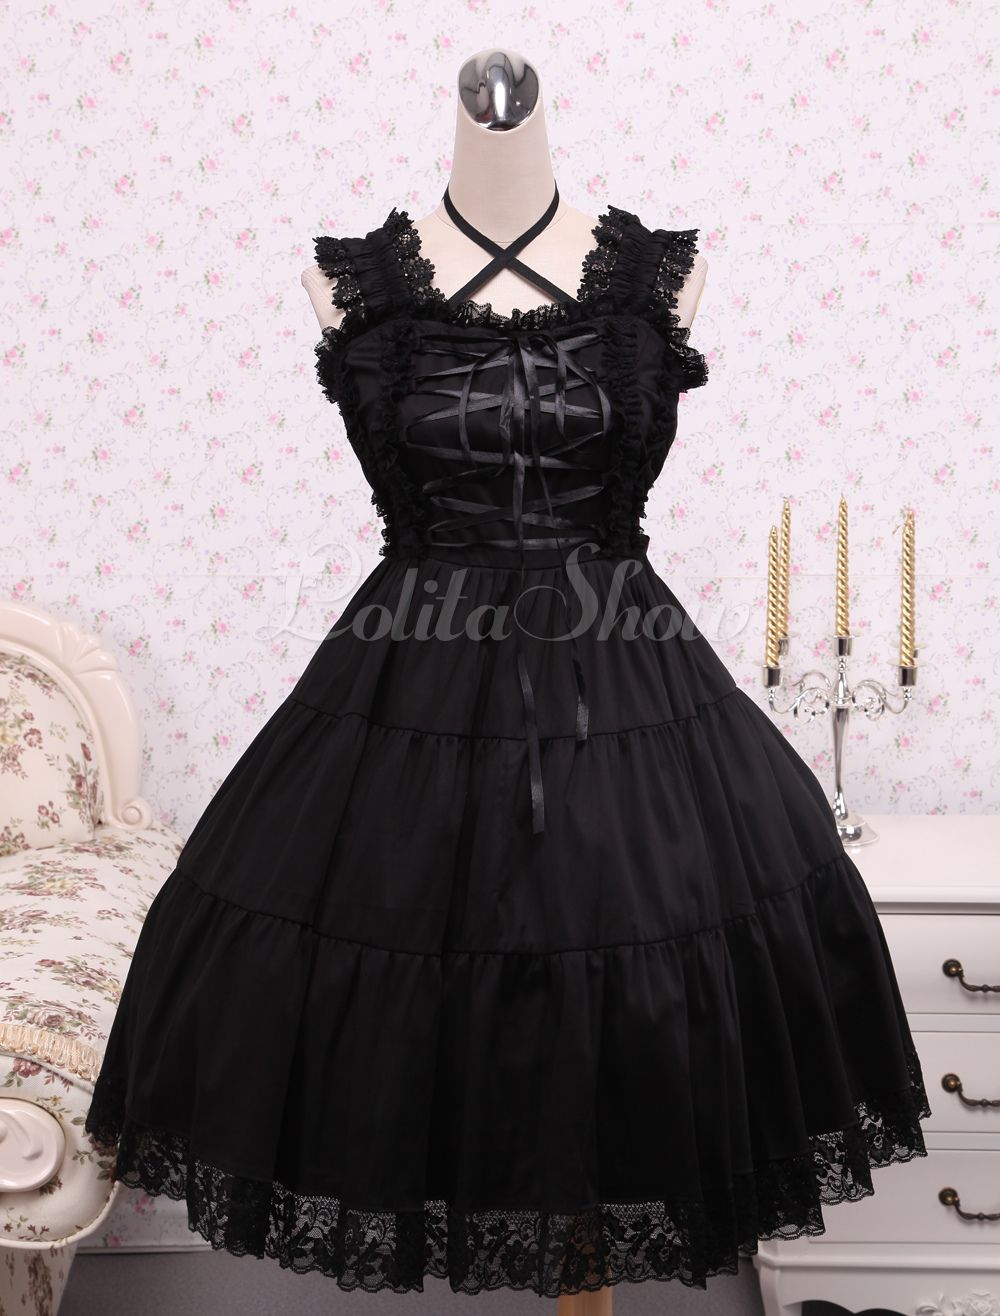 945a4de923c Pure Black Cotton Lolita Jumper Skirt Lace Trim Lace Up Waist Belt ...